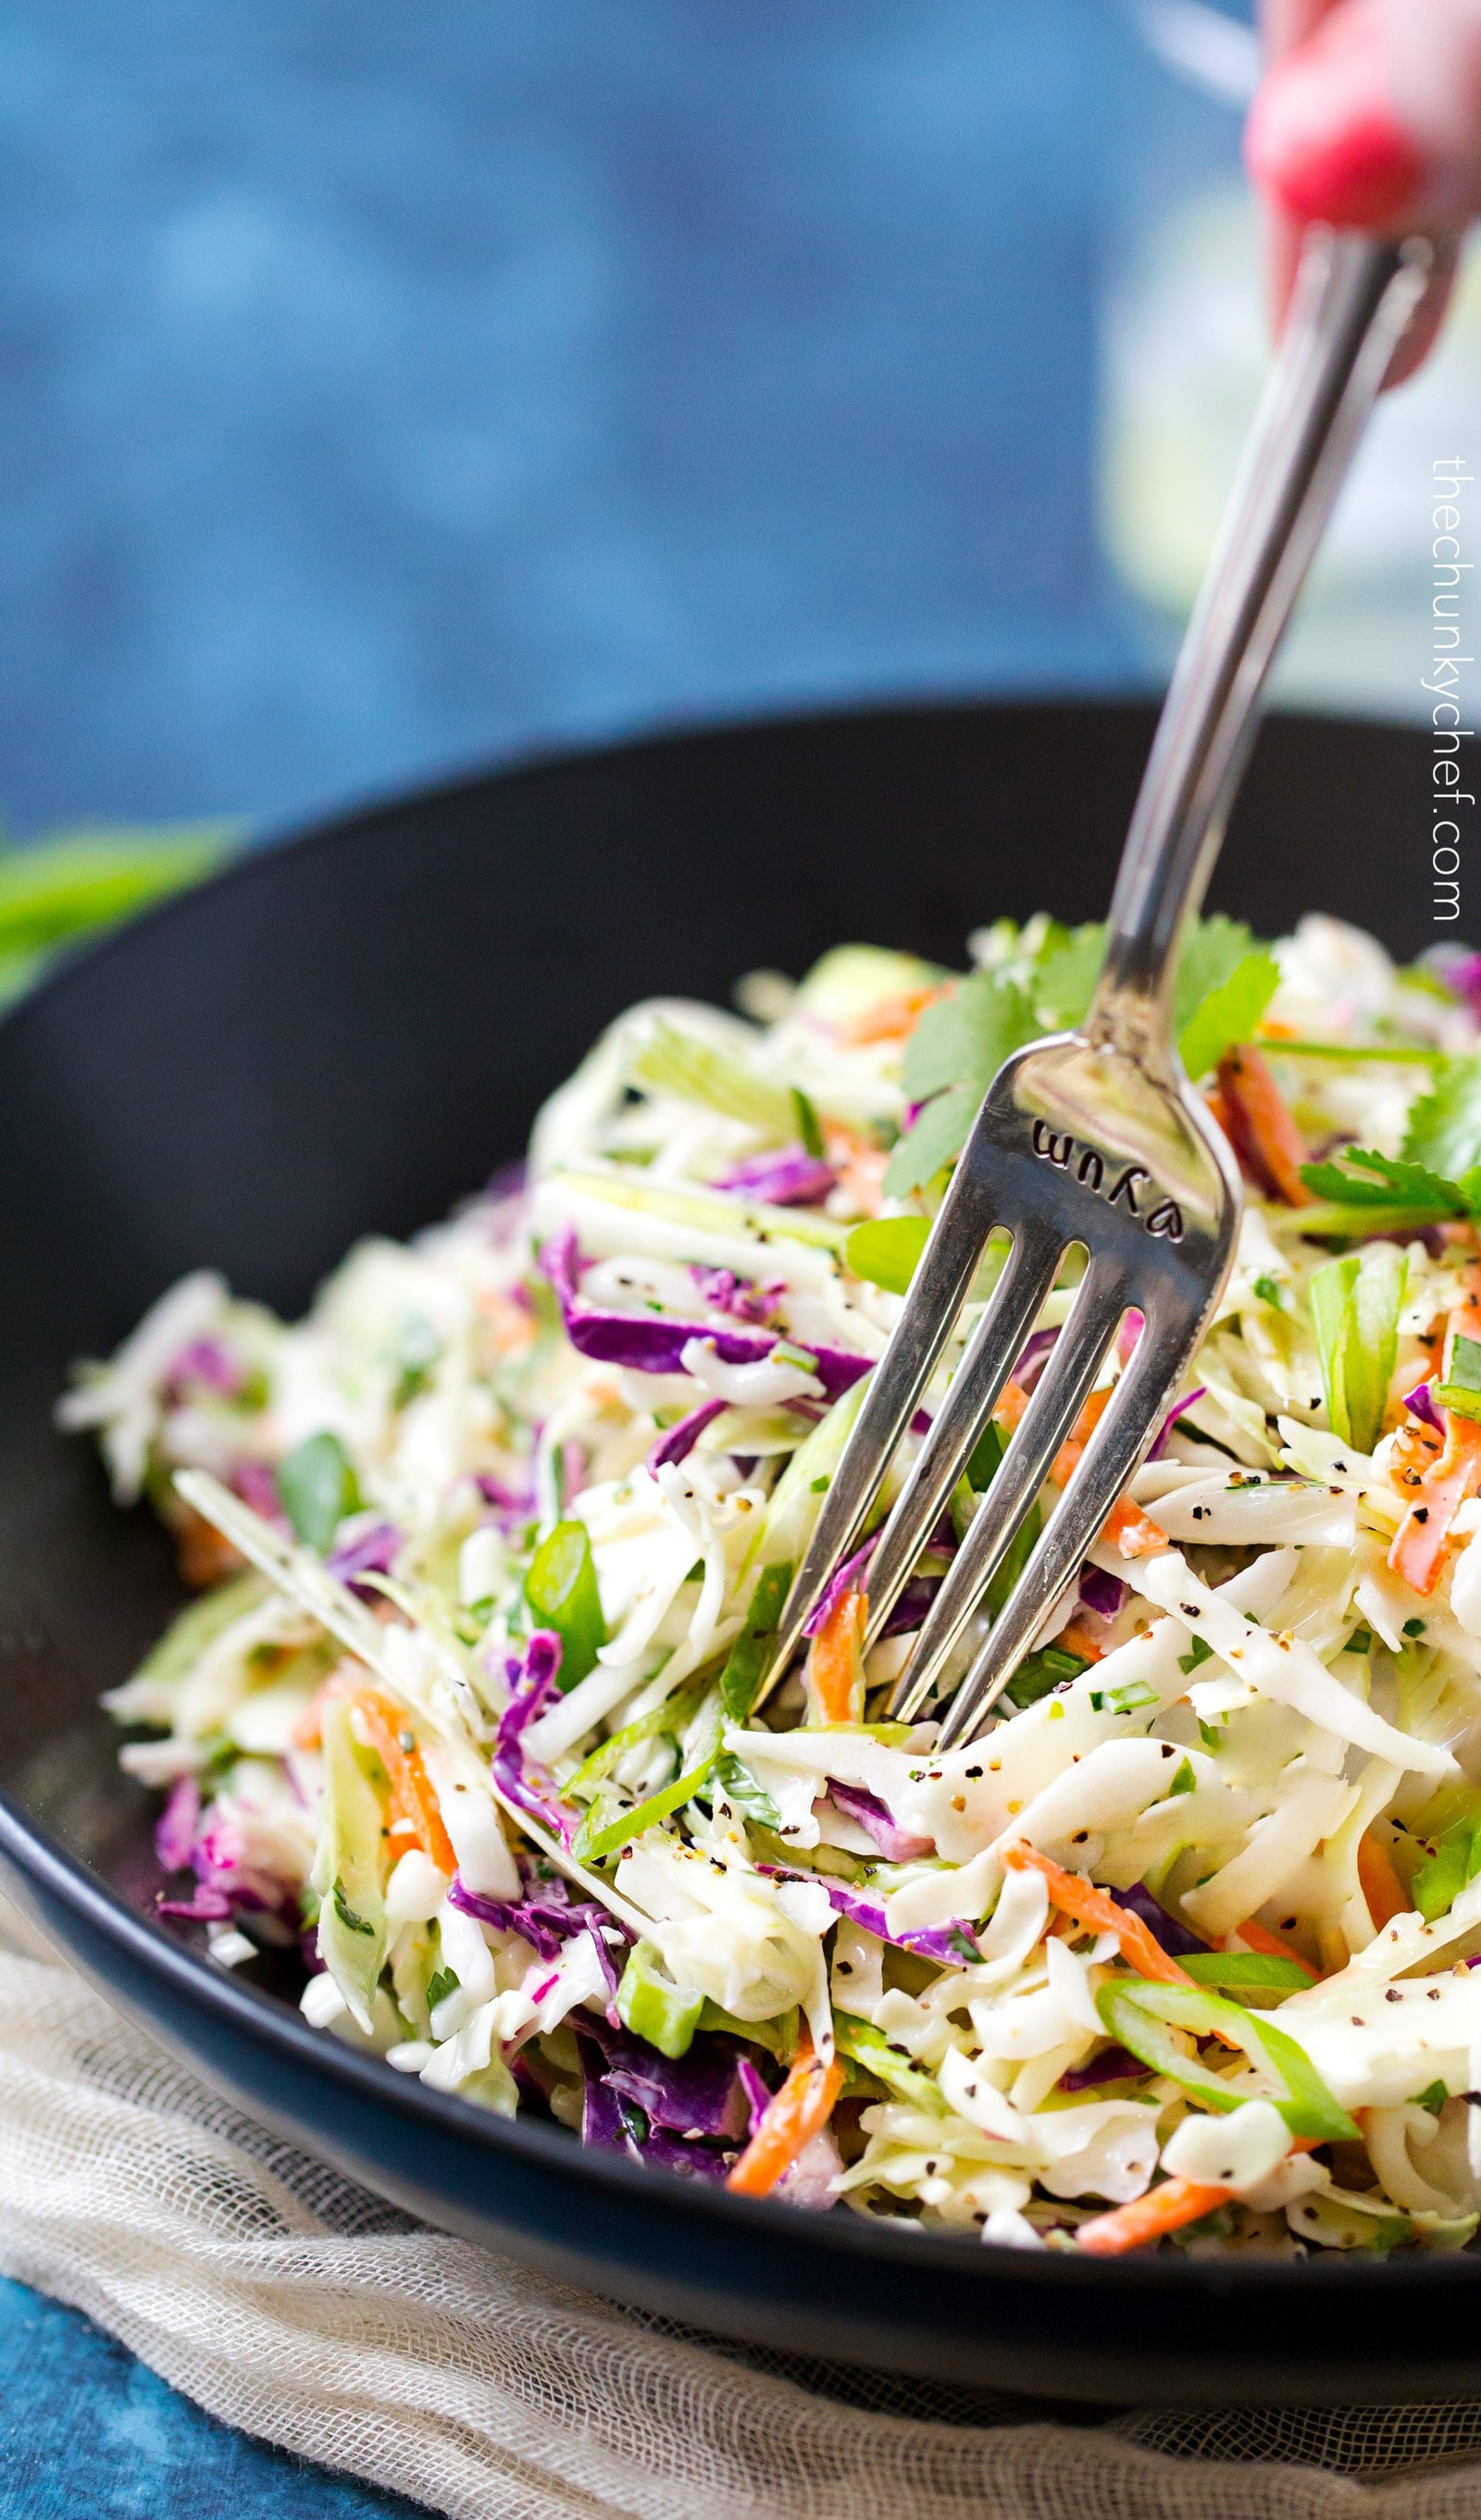 5 minute tequila lime coleslaw with cilantro the chunky chef tequila lime coleslaw with cilantro this unique coleslaw recipe combines great mexican flavors like tequila forumfinder